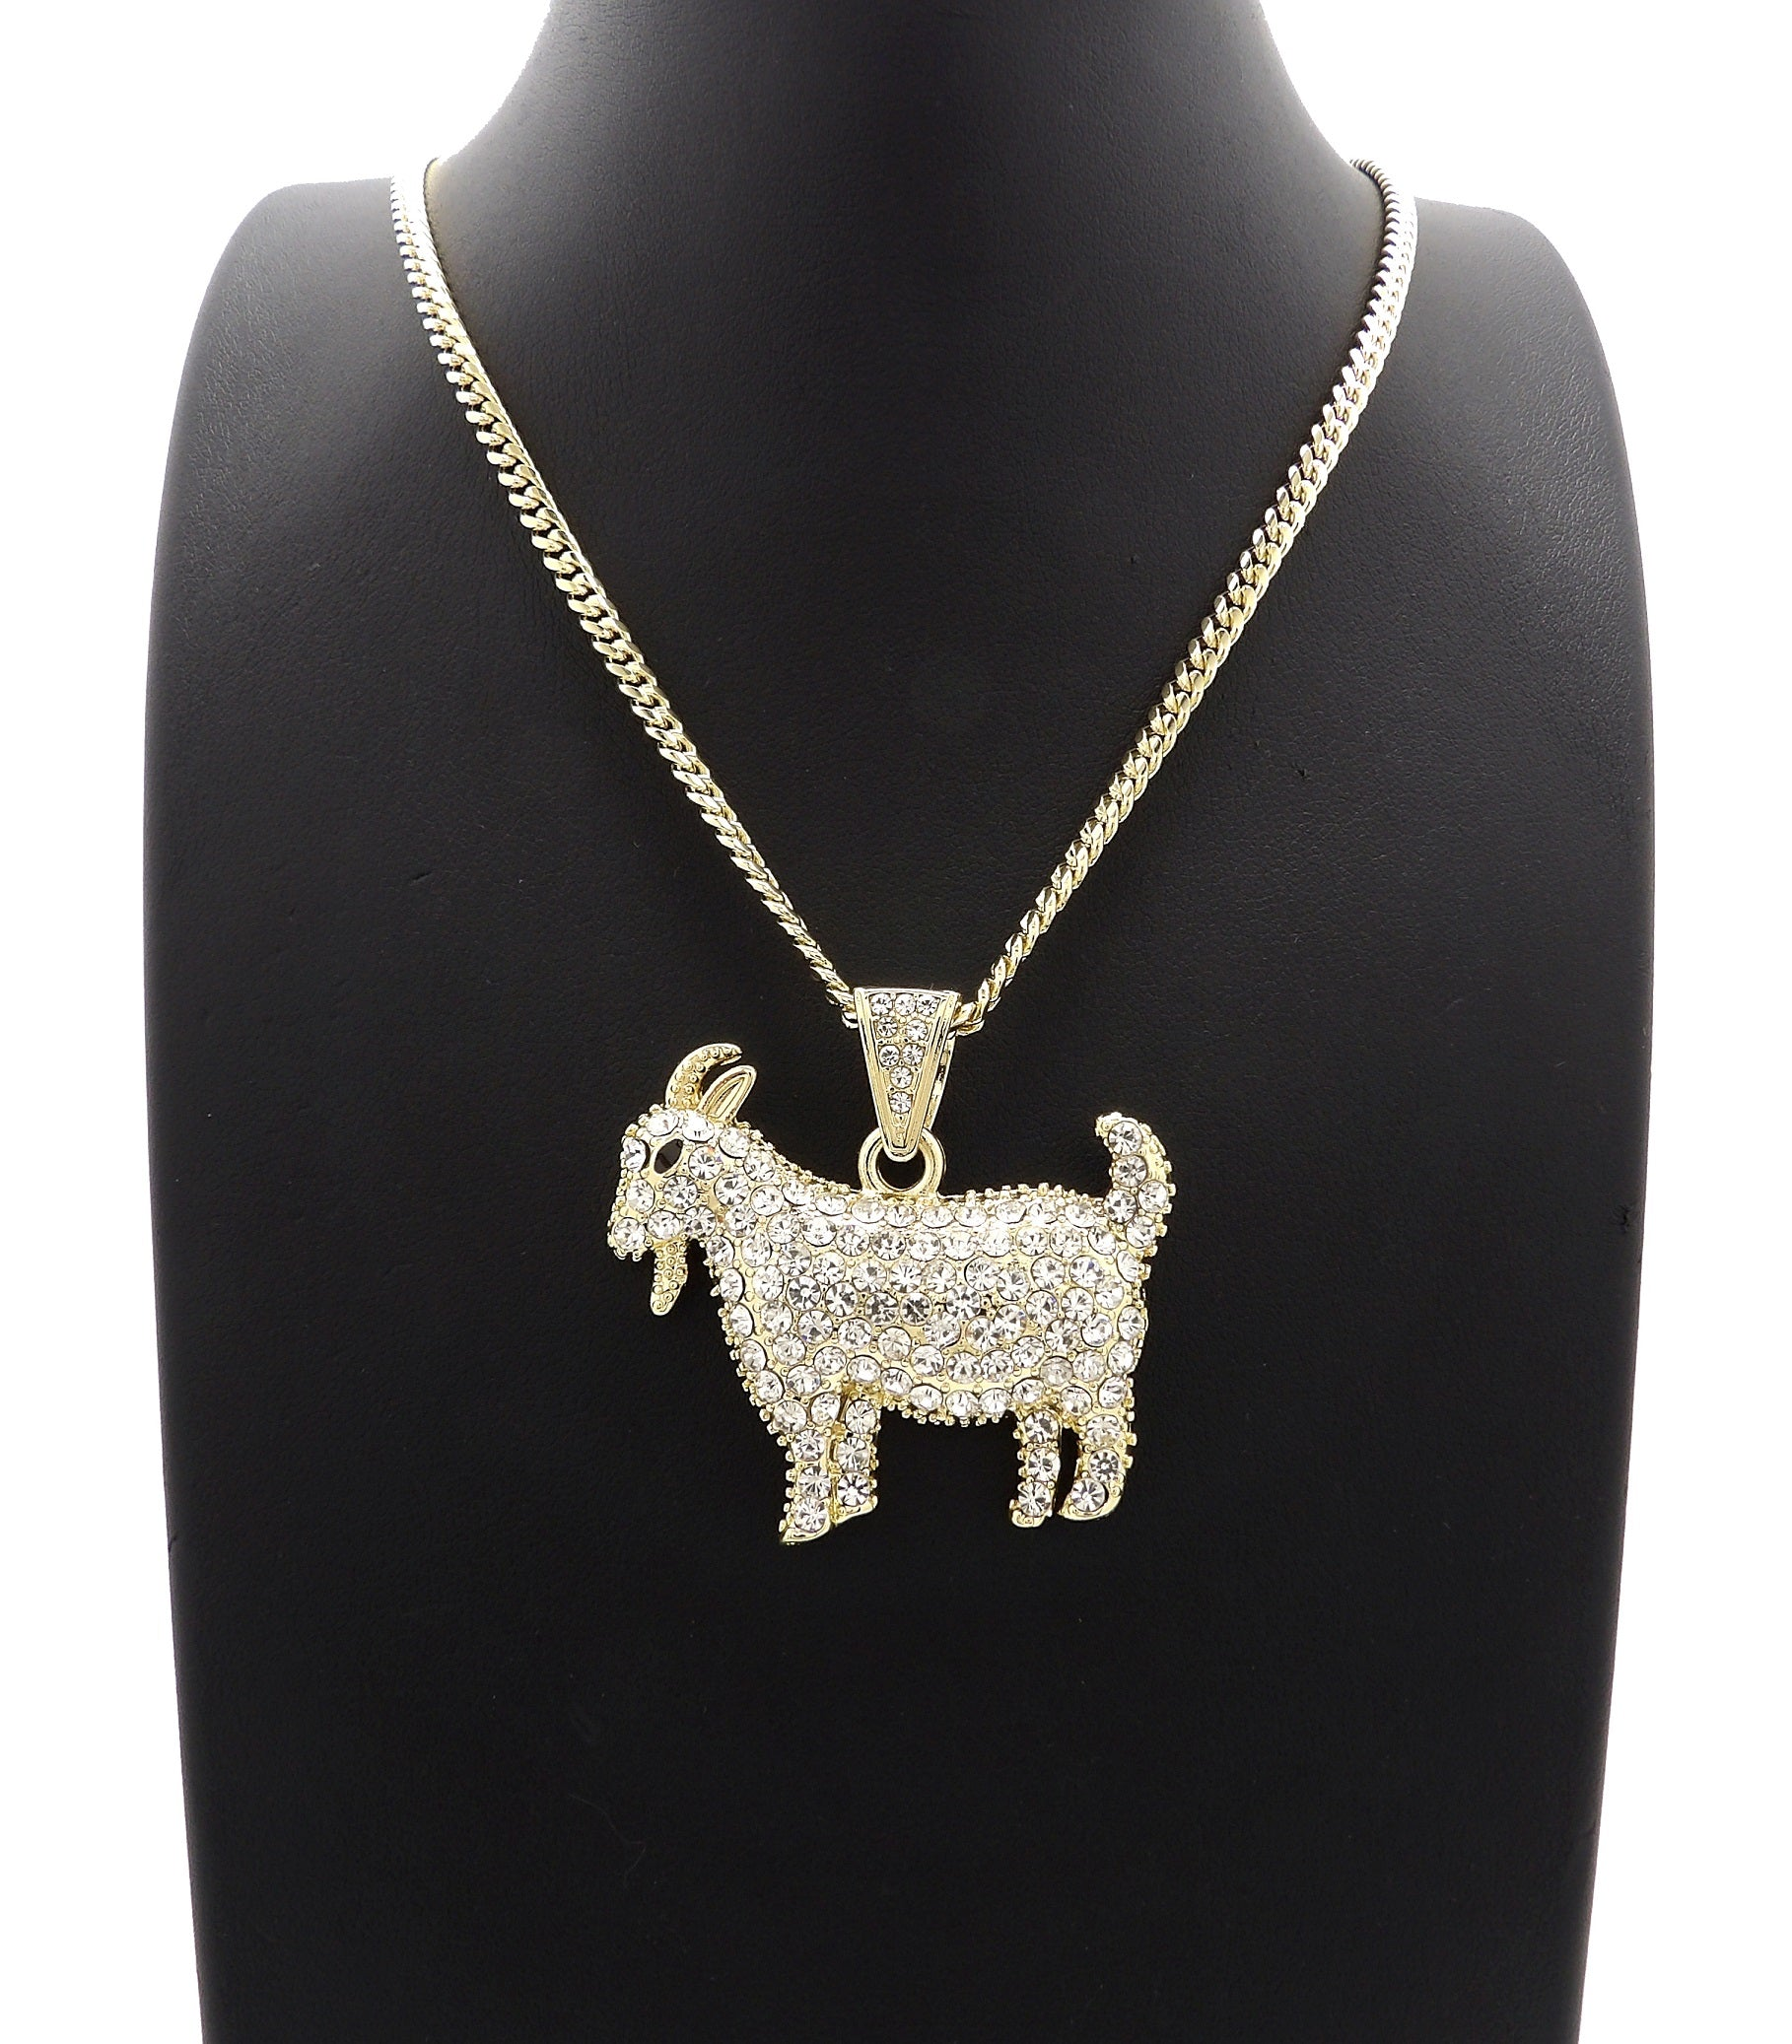 14K Iced Out The Goat Necklace